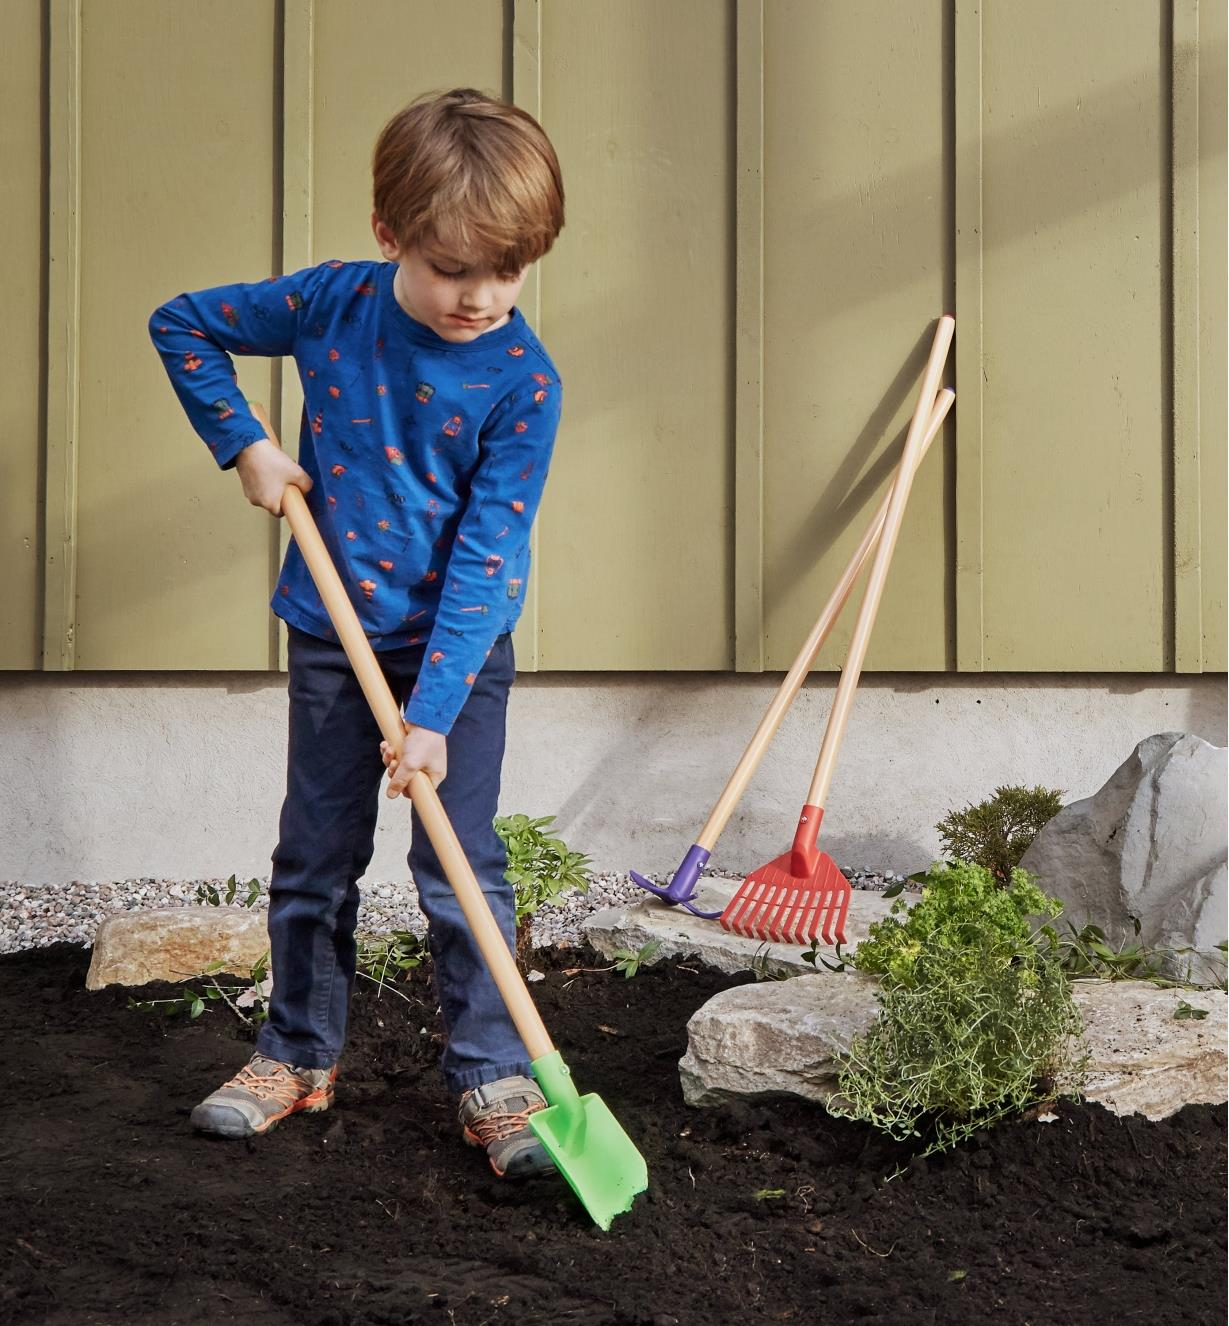 A child digs in a garden using the spade from the children's garden tools set